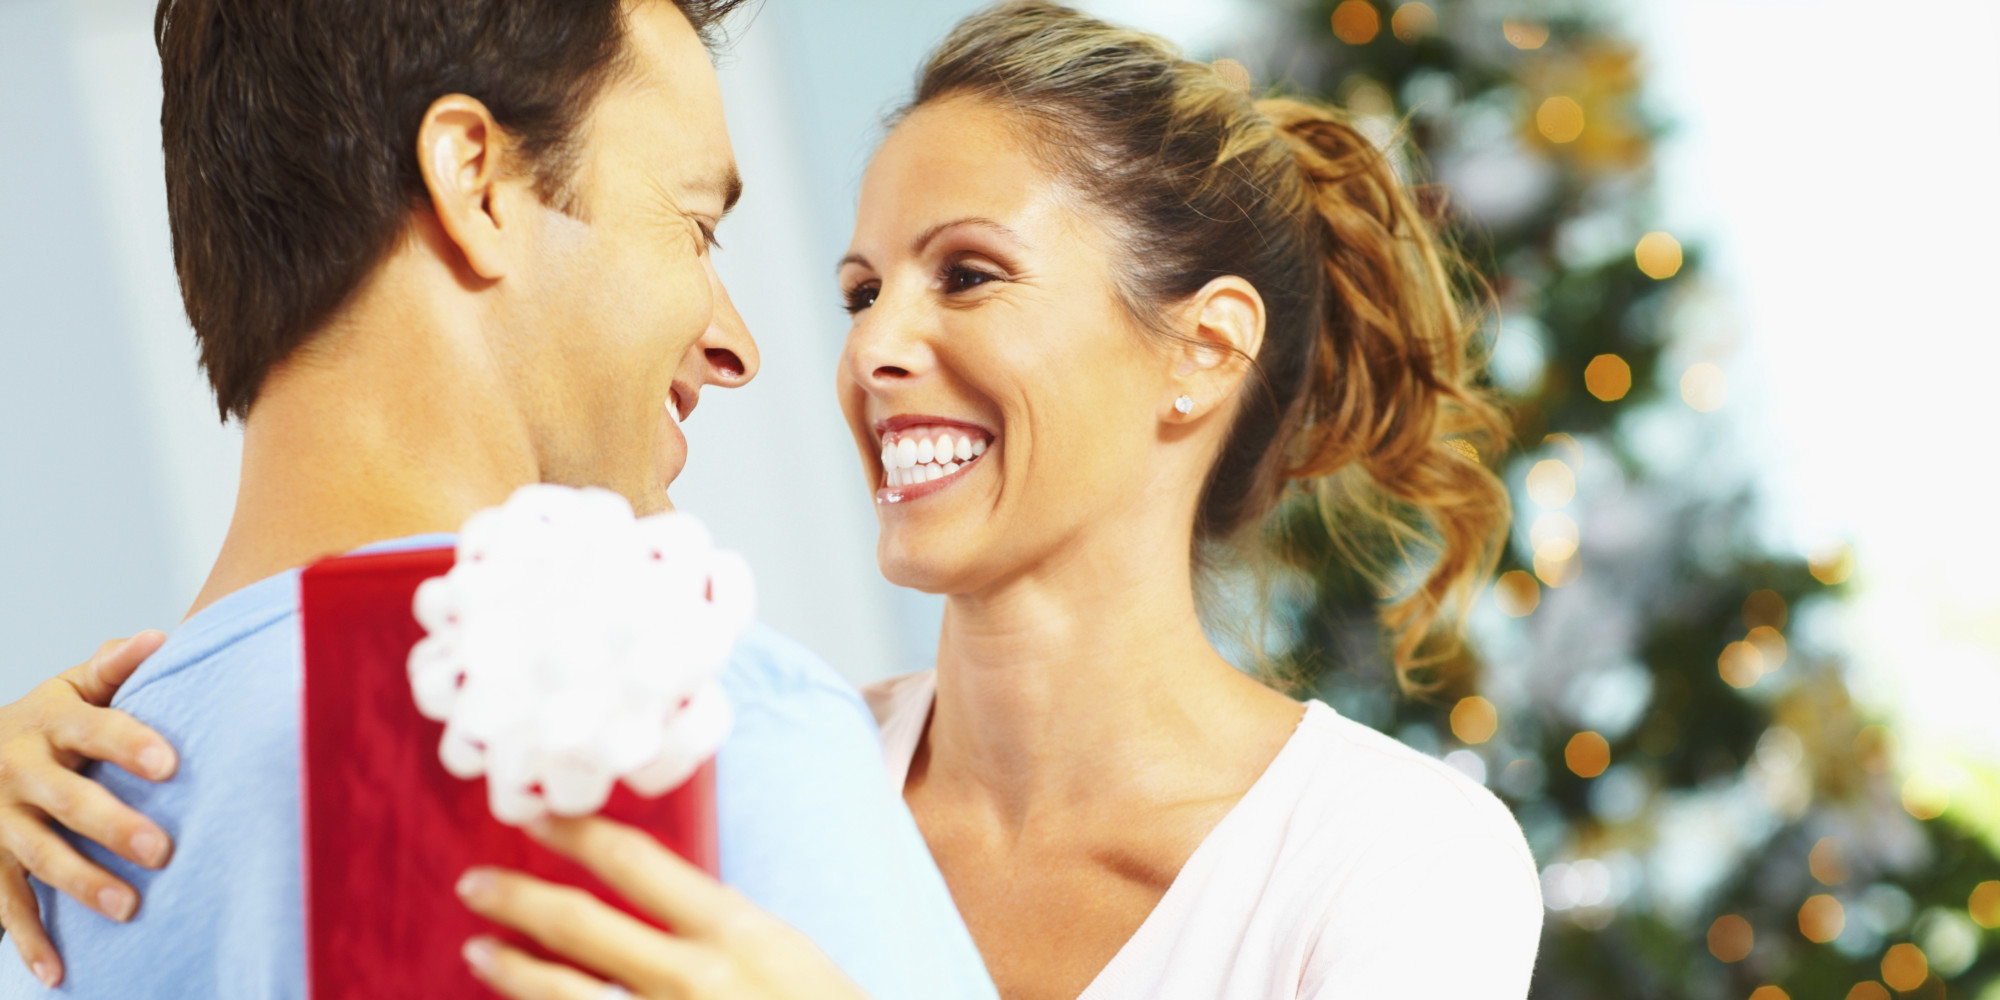 Best ideas about Christmas Gift Ideas For Young Couples . Save or Pin 11 Awful Holiday Gift Ideas for New Girlfriends Now.